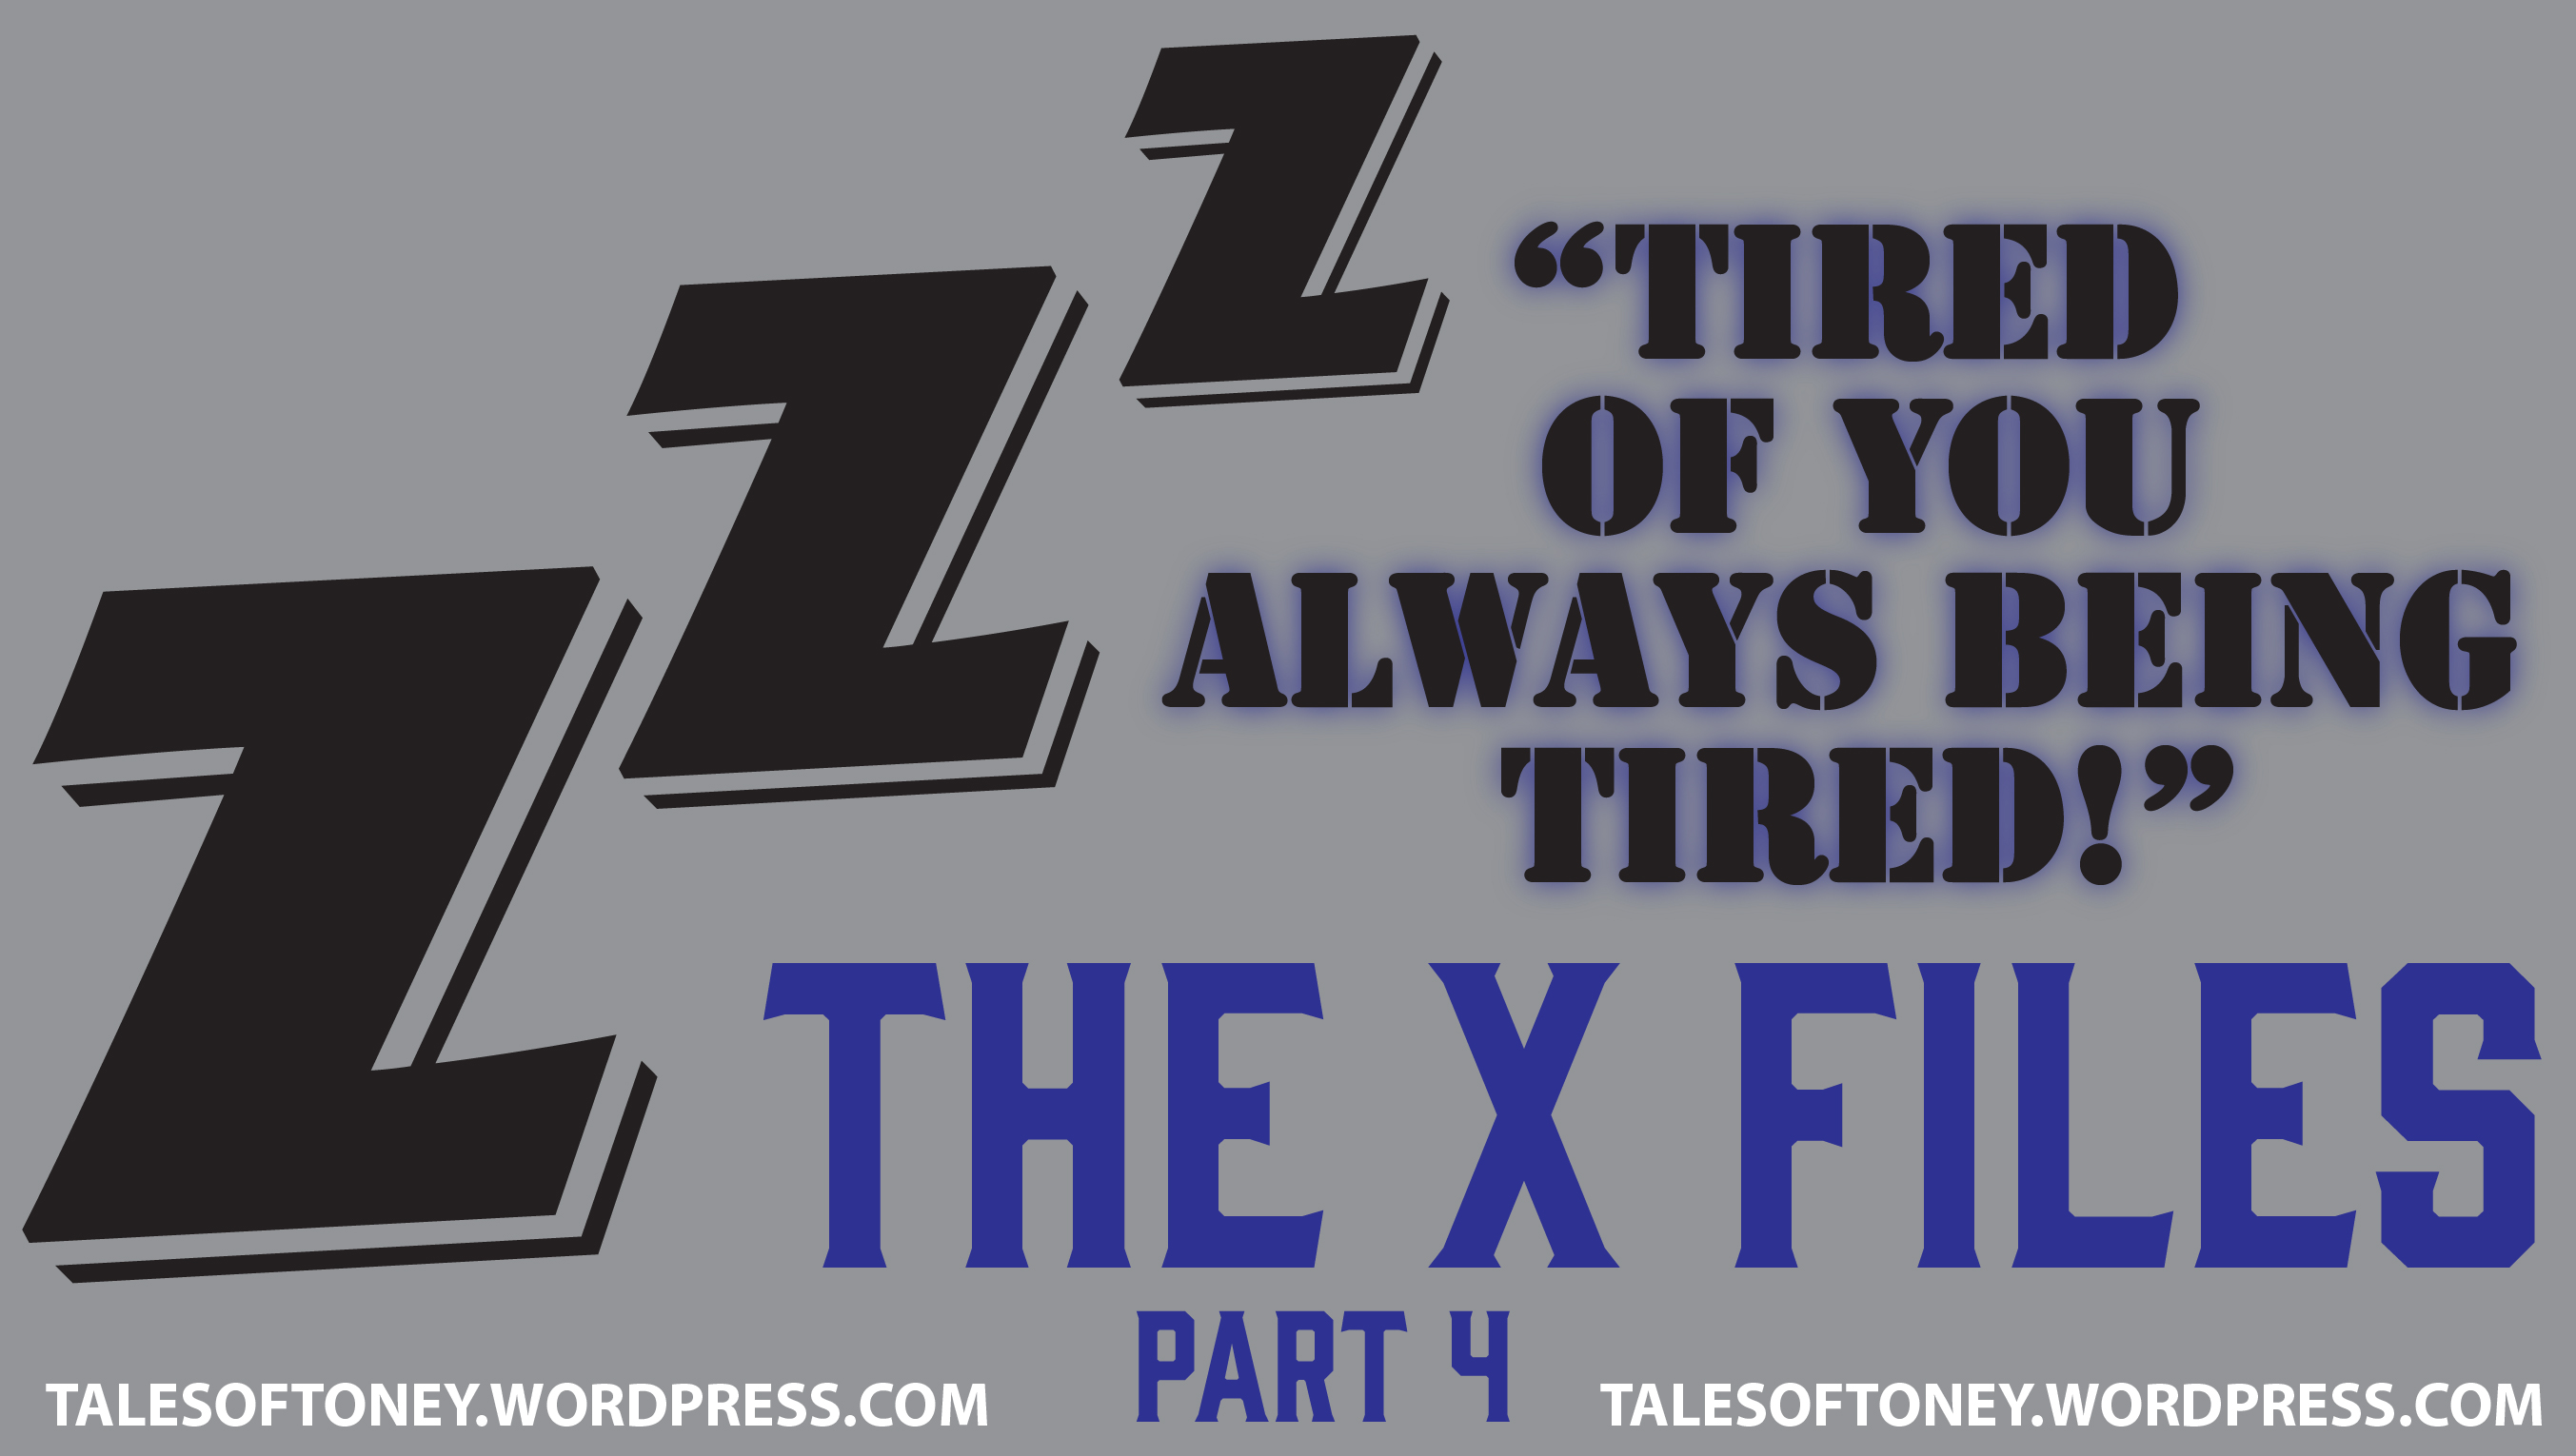 X-FILES_TIRED HEADER_PT4-01